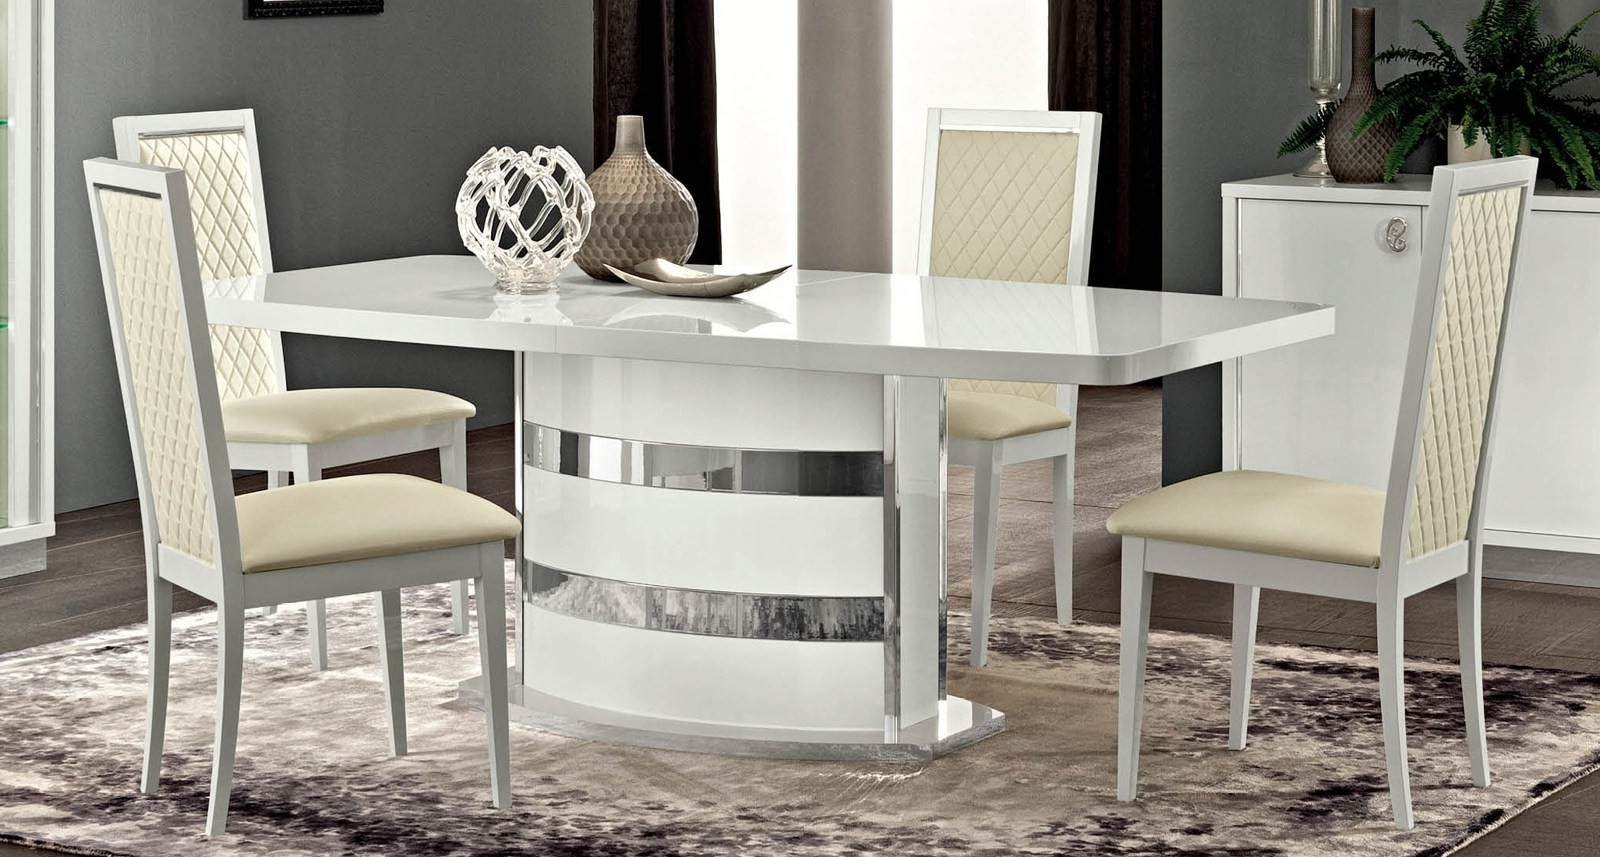 Most Up To Date Esf Esf Furniture Roma 7Pcs Dining Room Set In White – Roma With Regard To Roma Dining Tables And Chairs Sets (View 9 of 25)